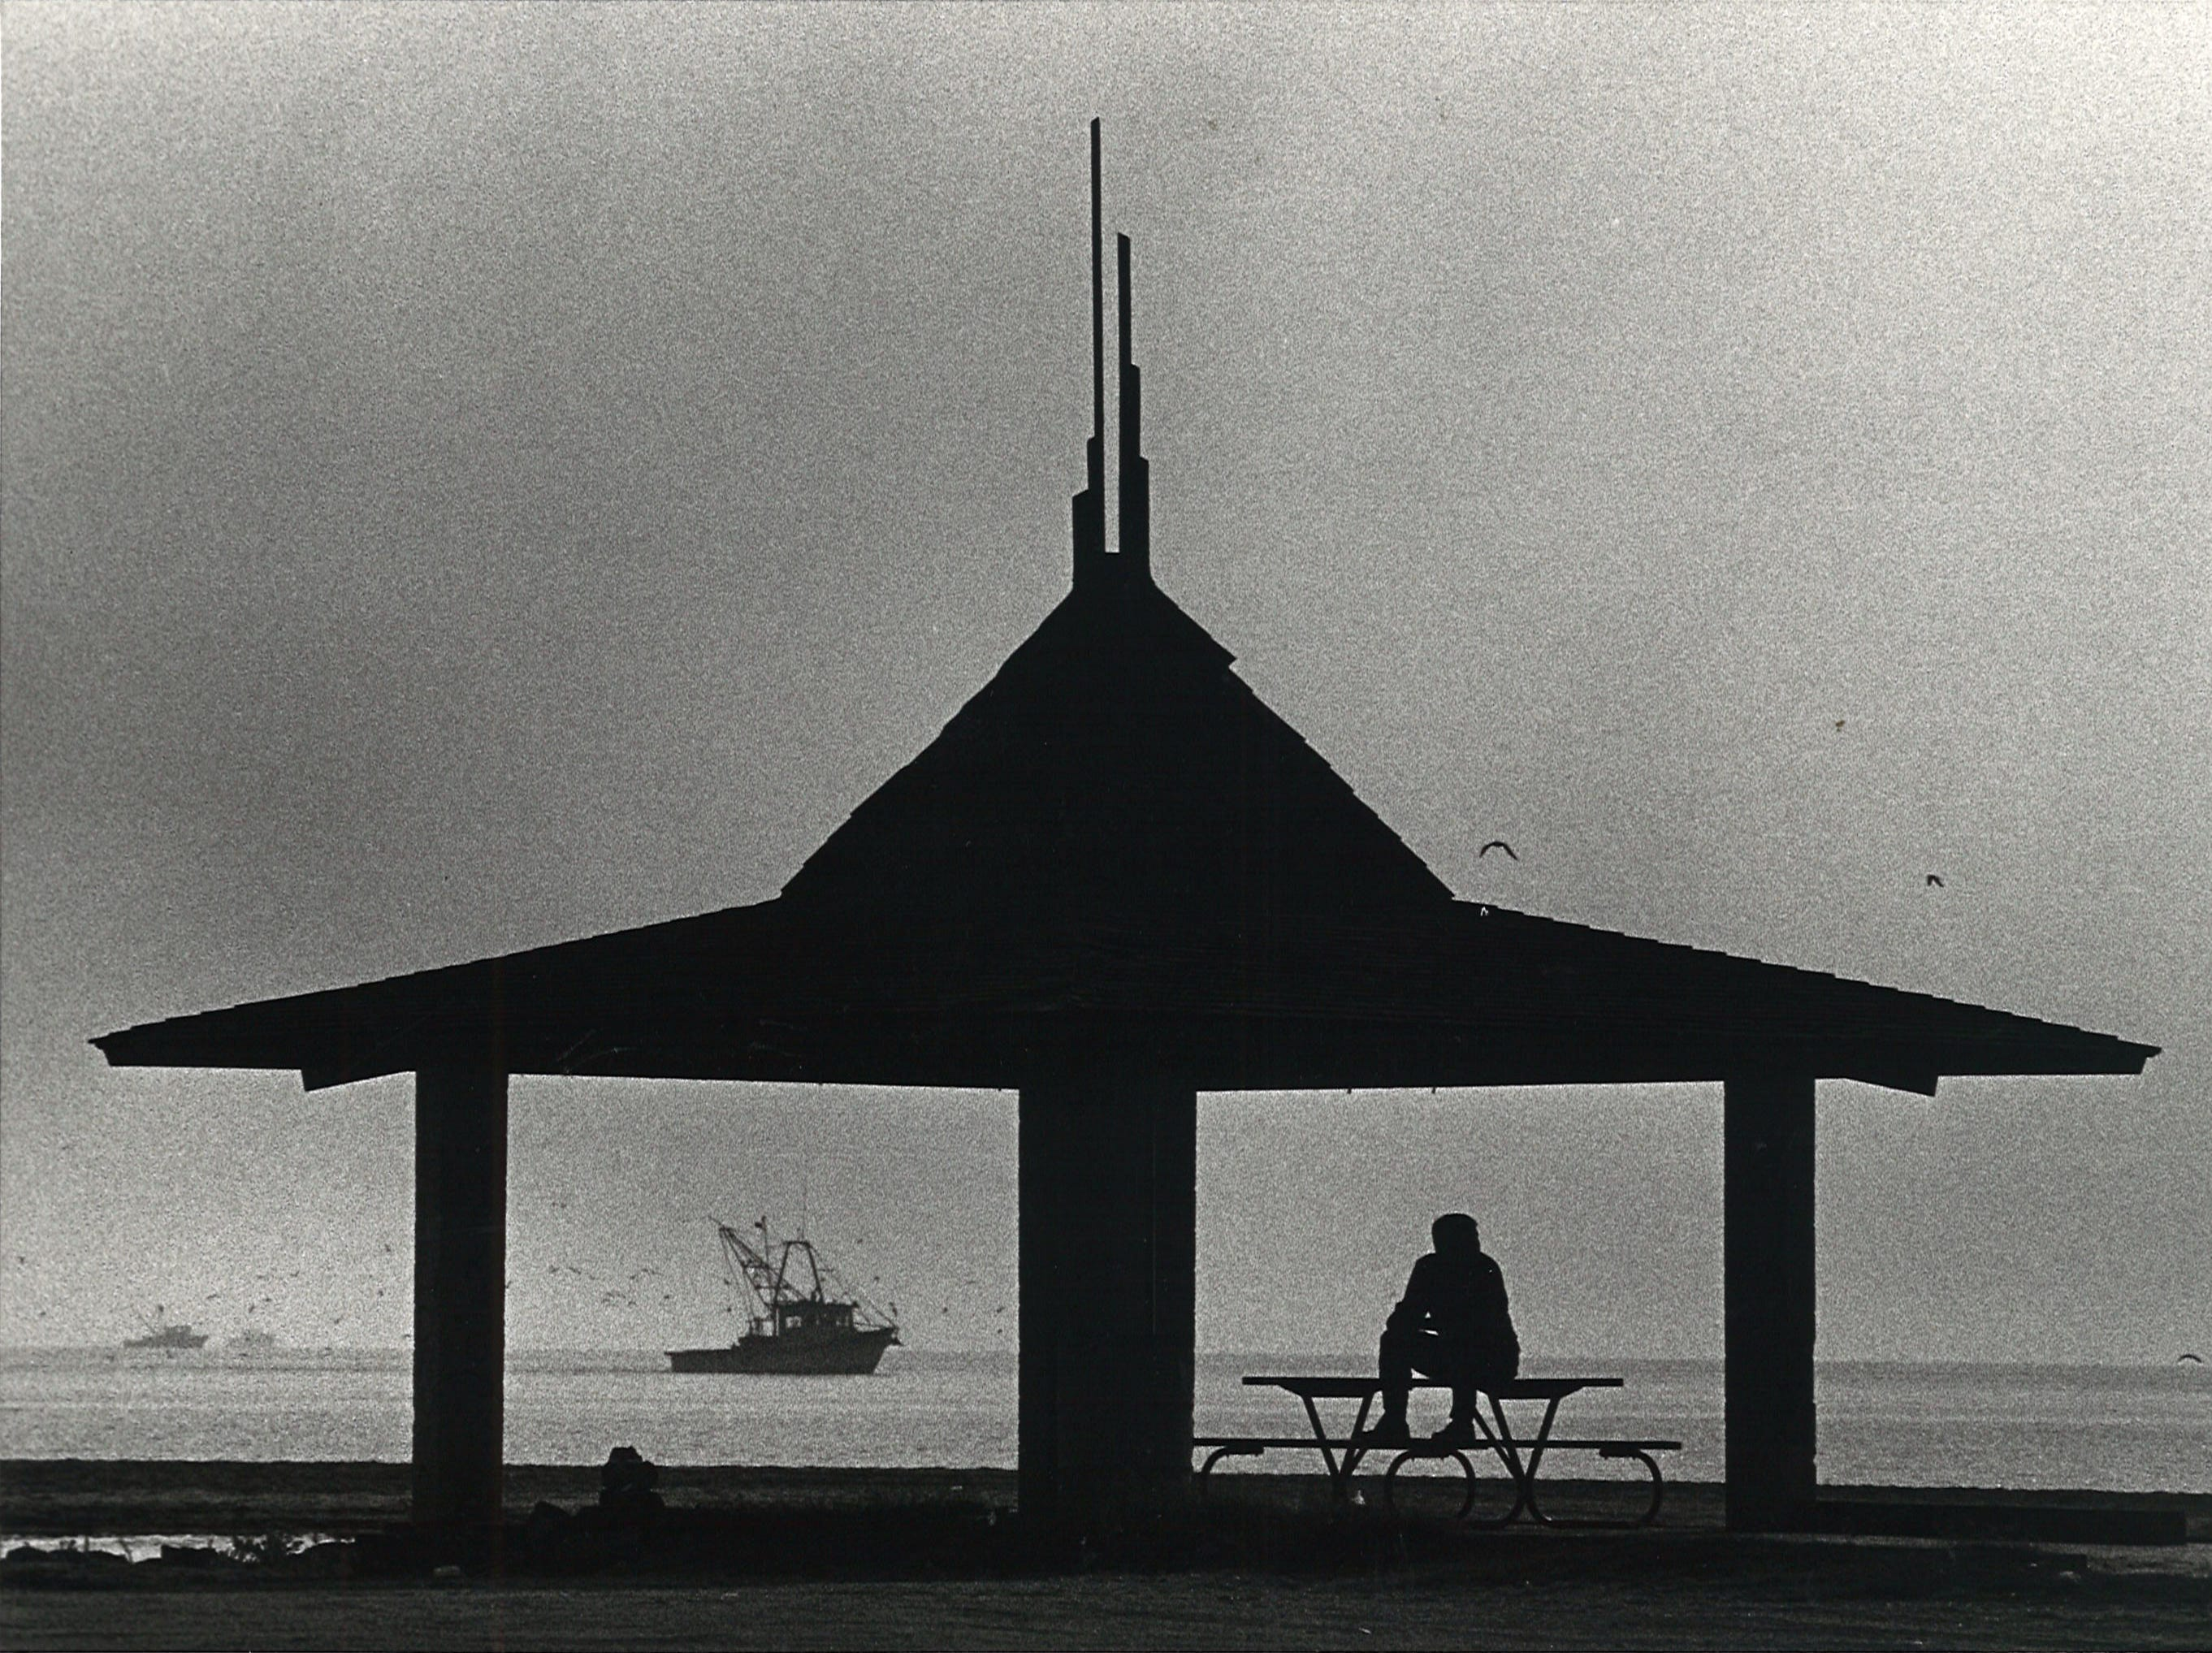 A tourist enjoyed the solitude early in the morning on Corpus Christi's North Beach in September 1981.